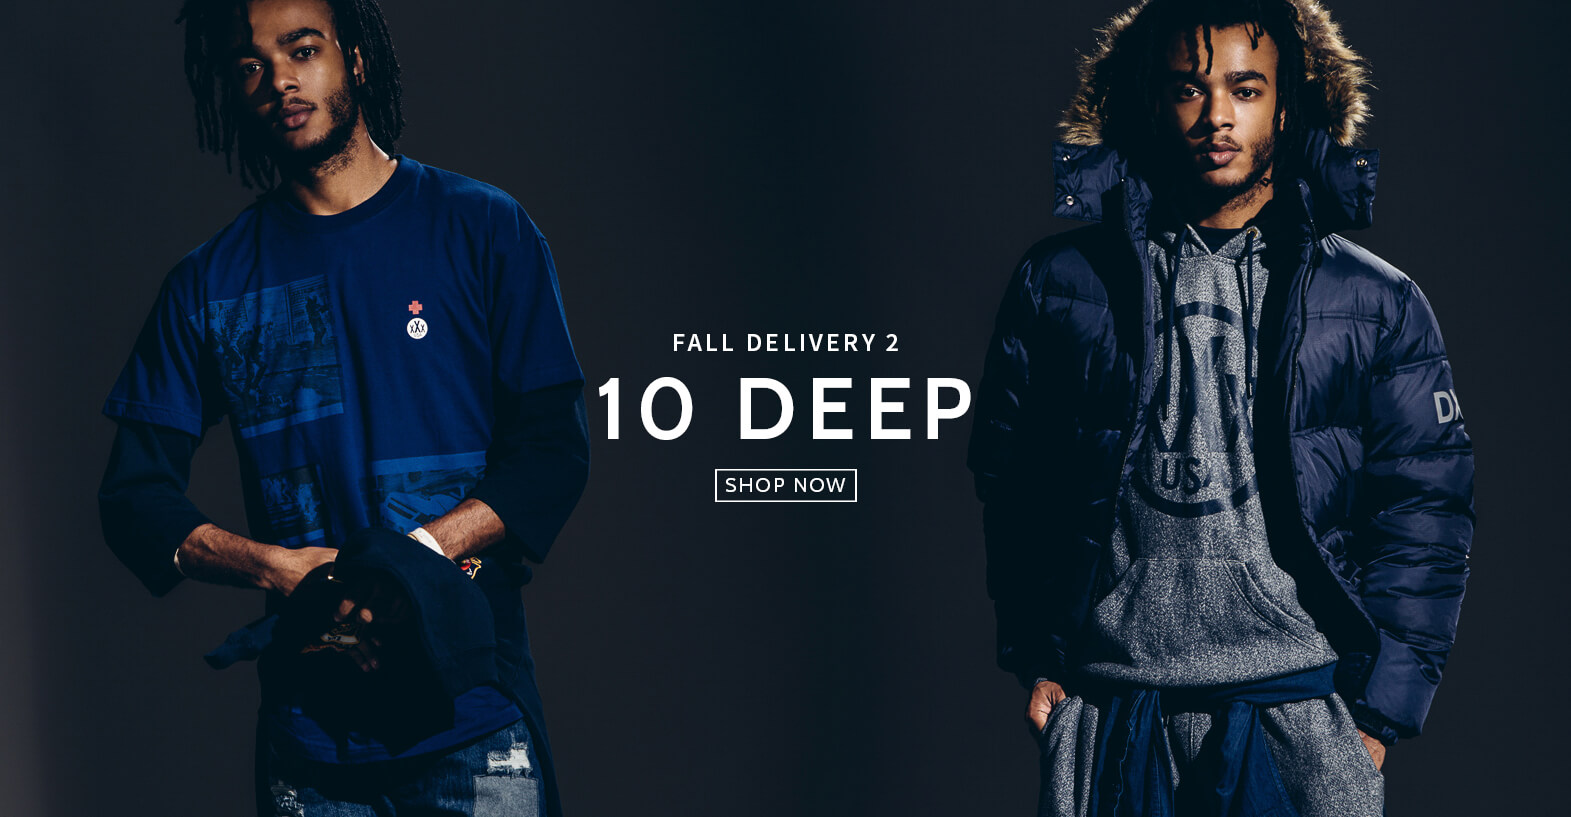 10 DEEP FALL DELIVERY 2